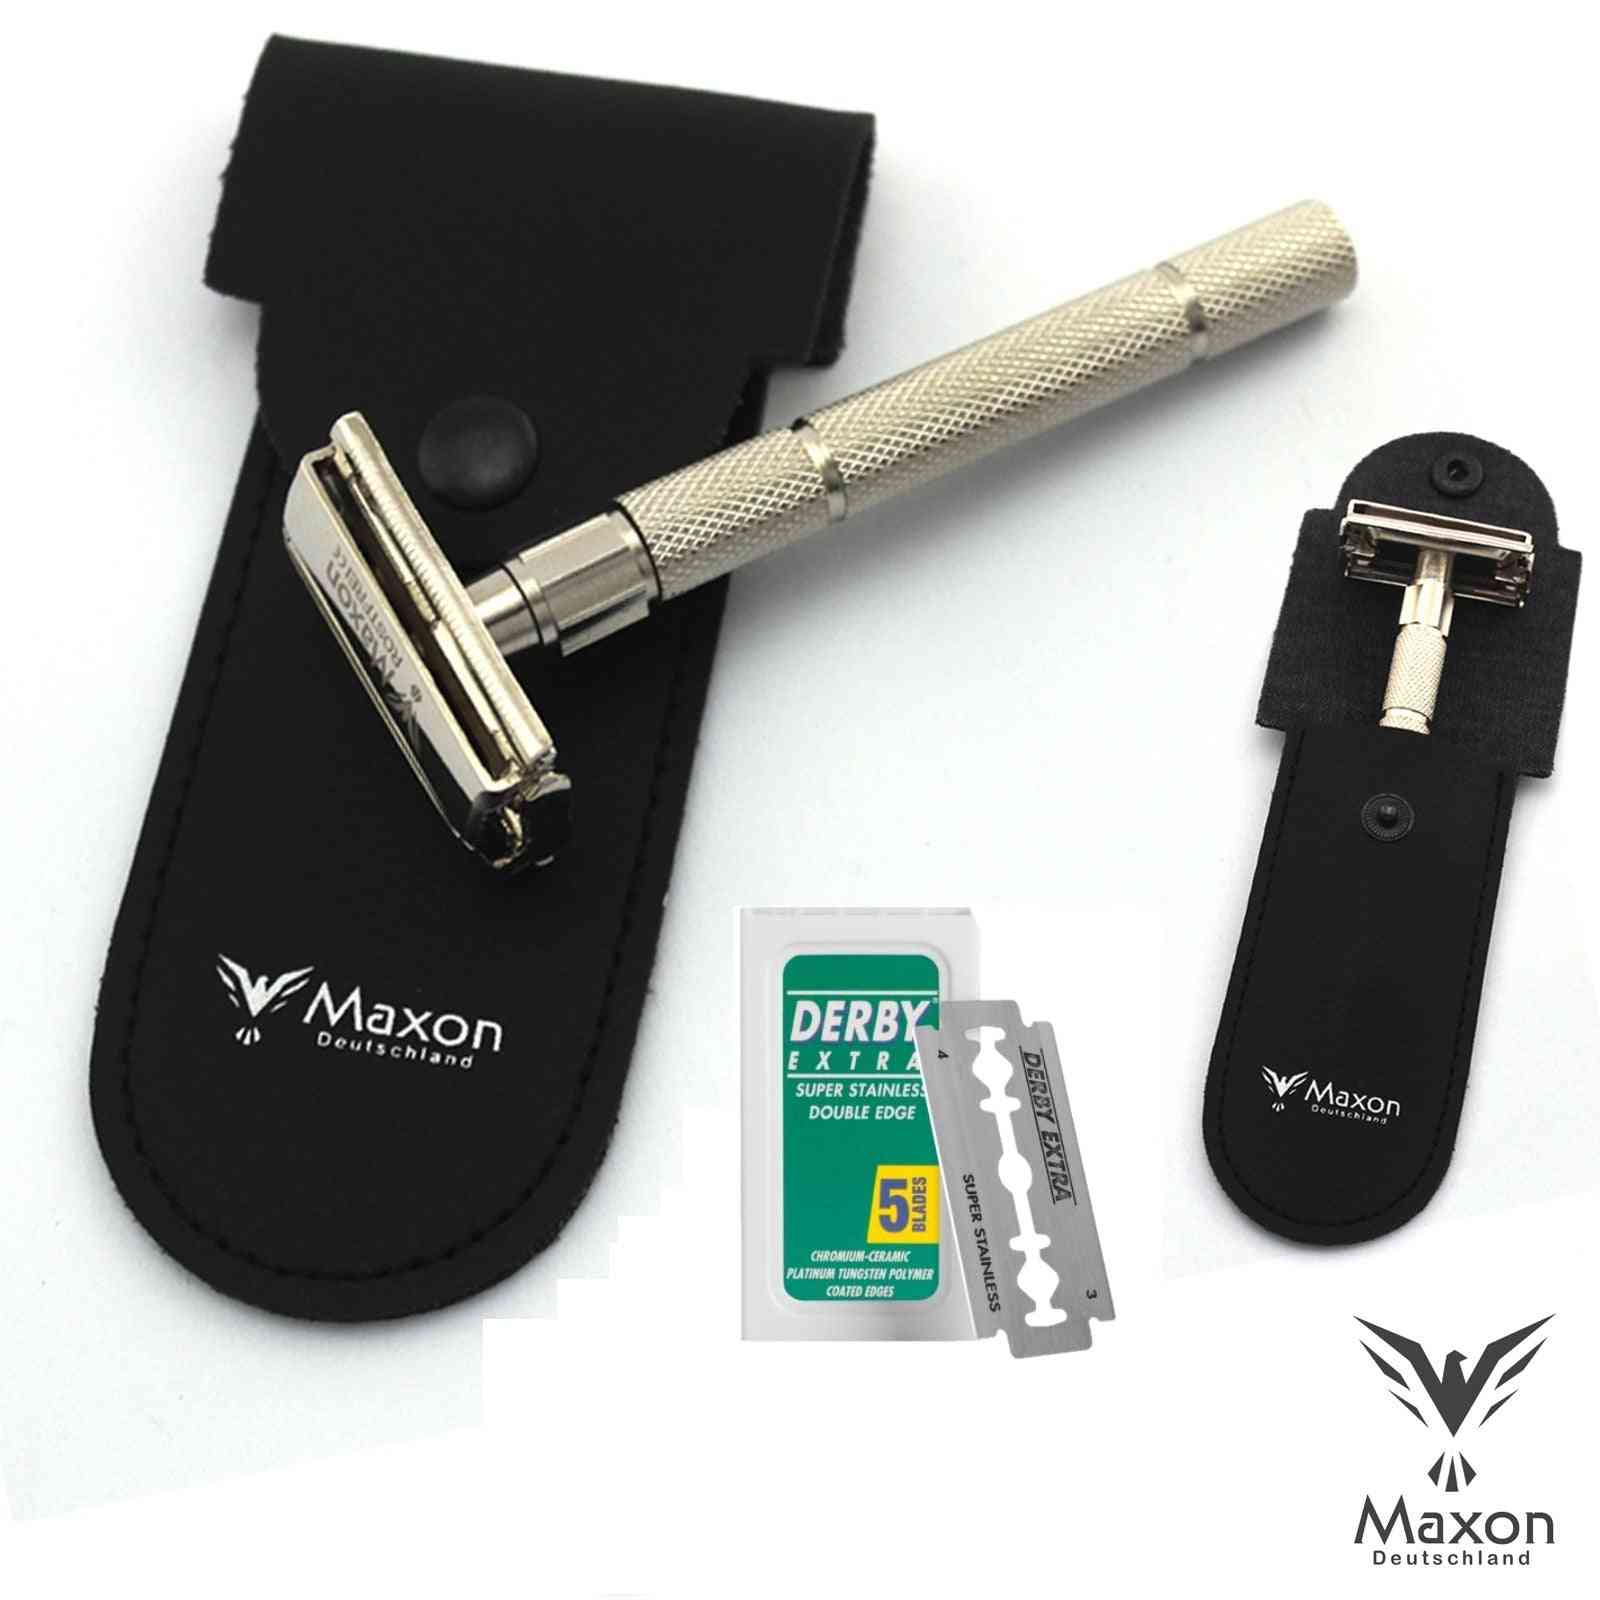 Maxon Slh Safety Razor With Blades And Leather Case